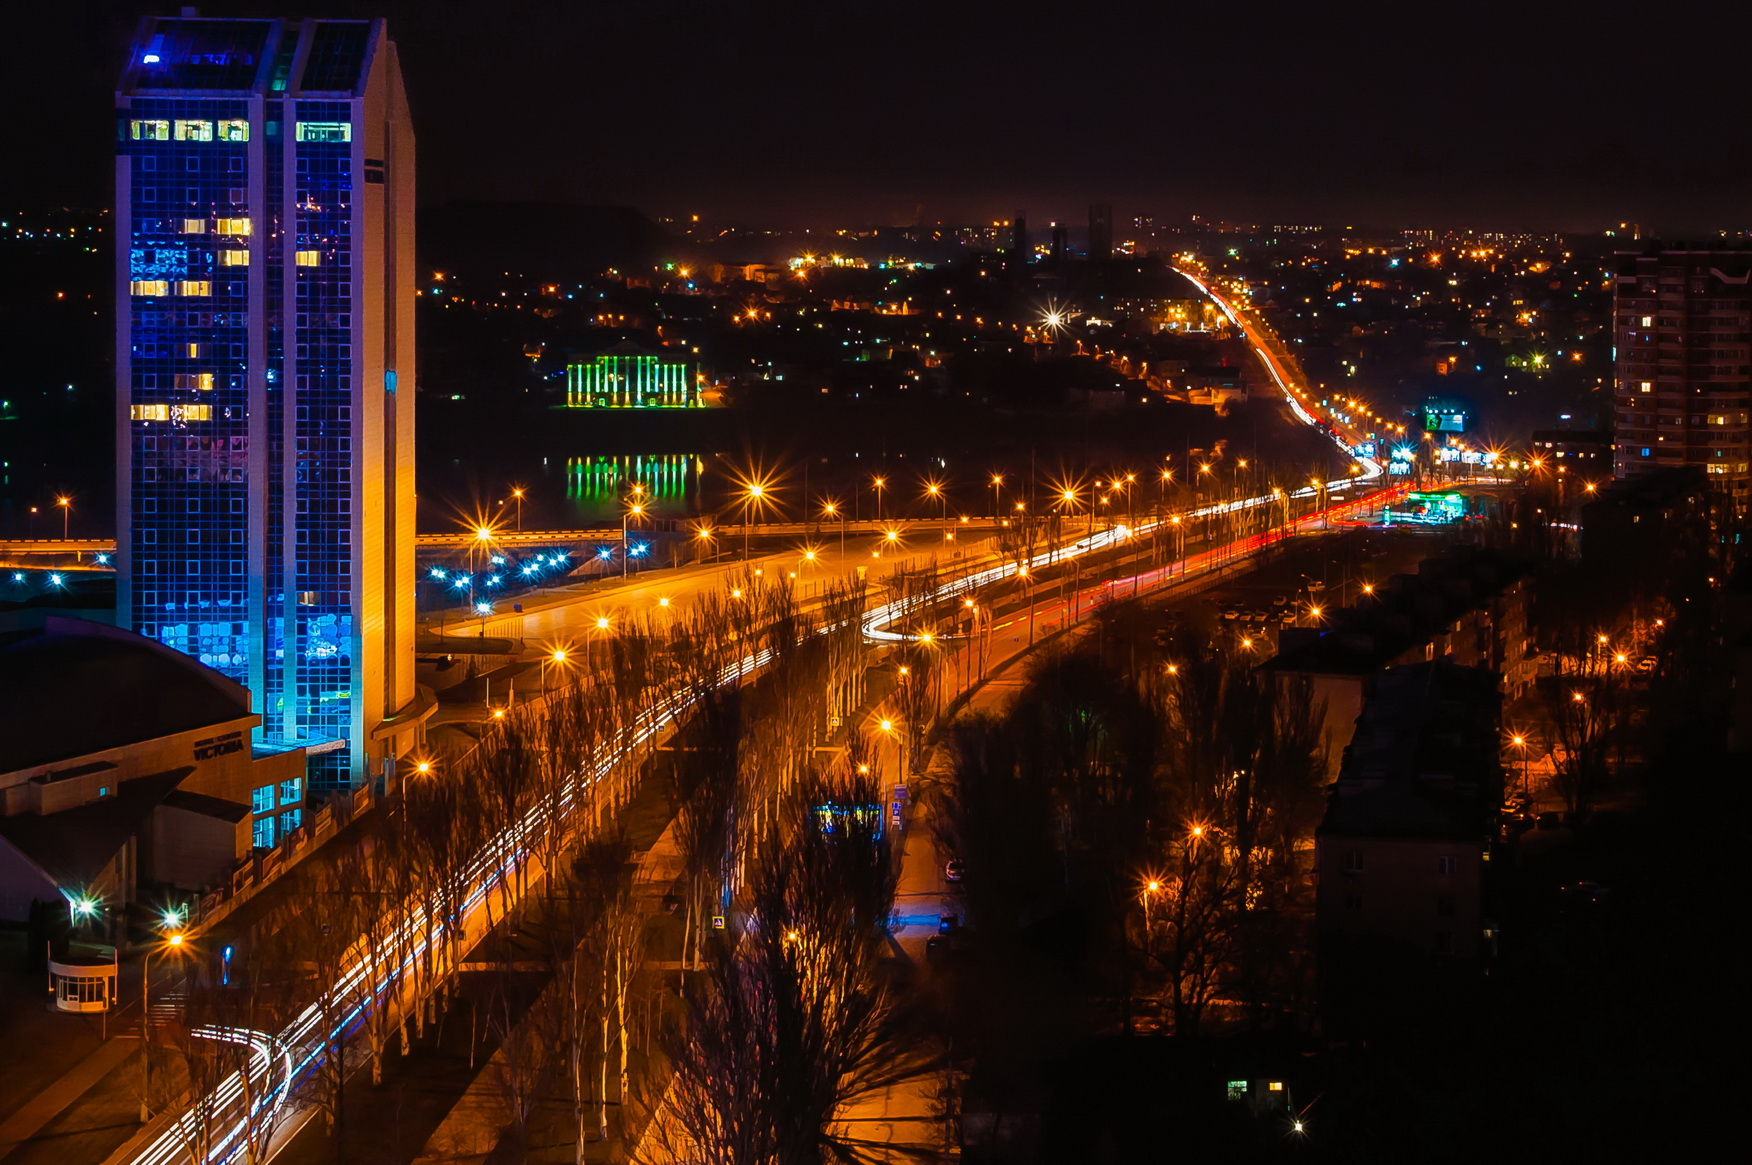 Donetsk night. Mira Avenue. Oleh Zack